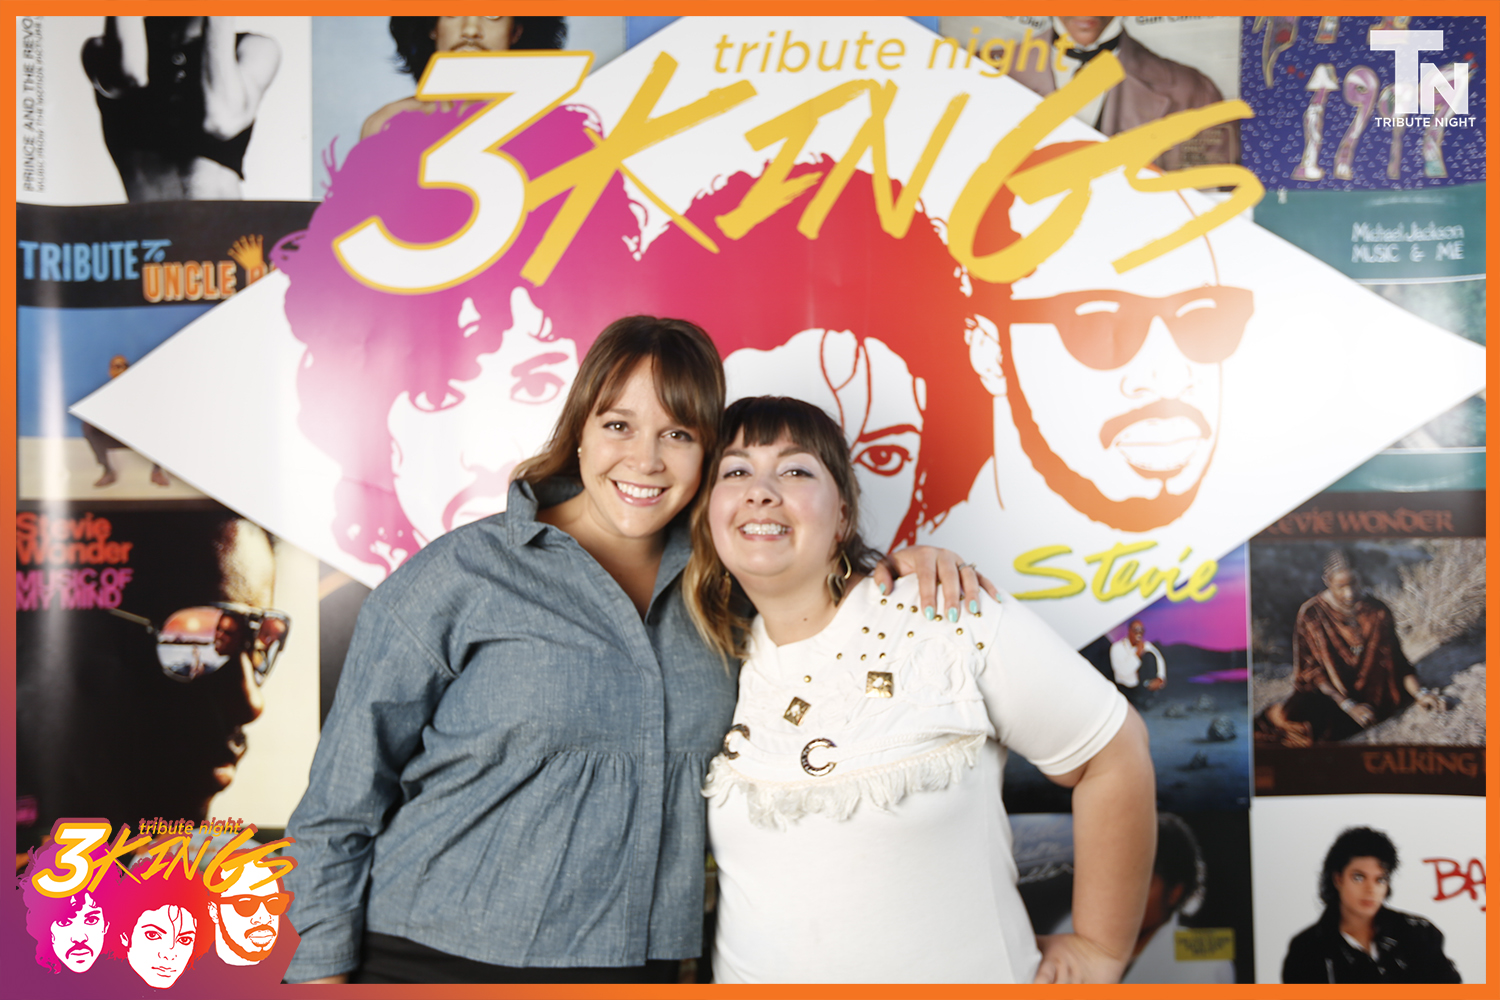 3kings Tribute Night Logo189.jpg